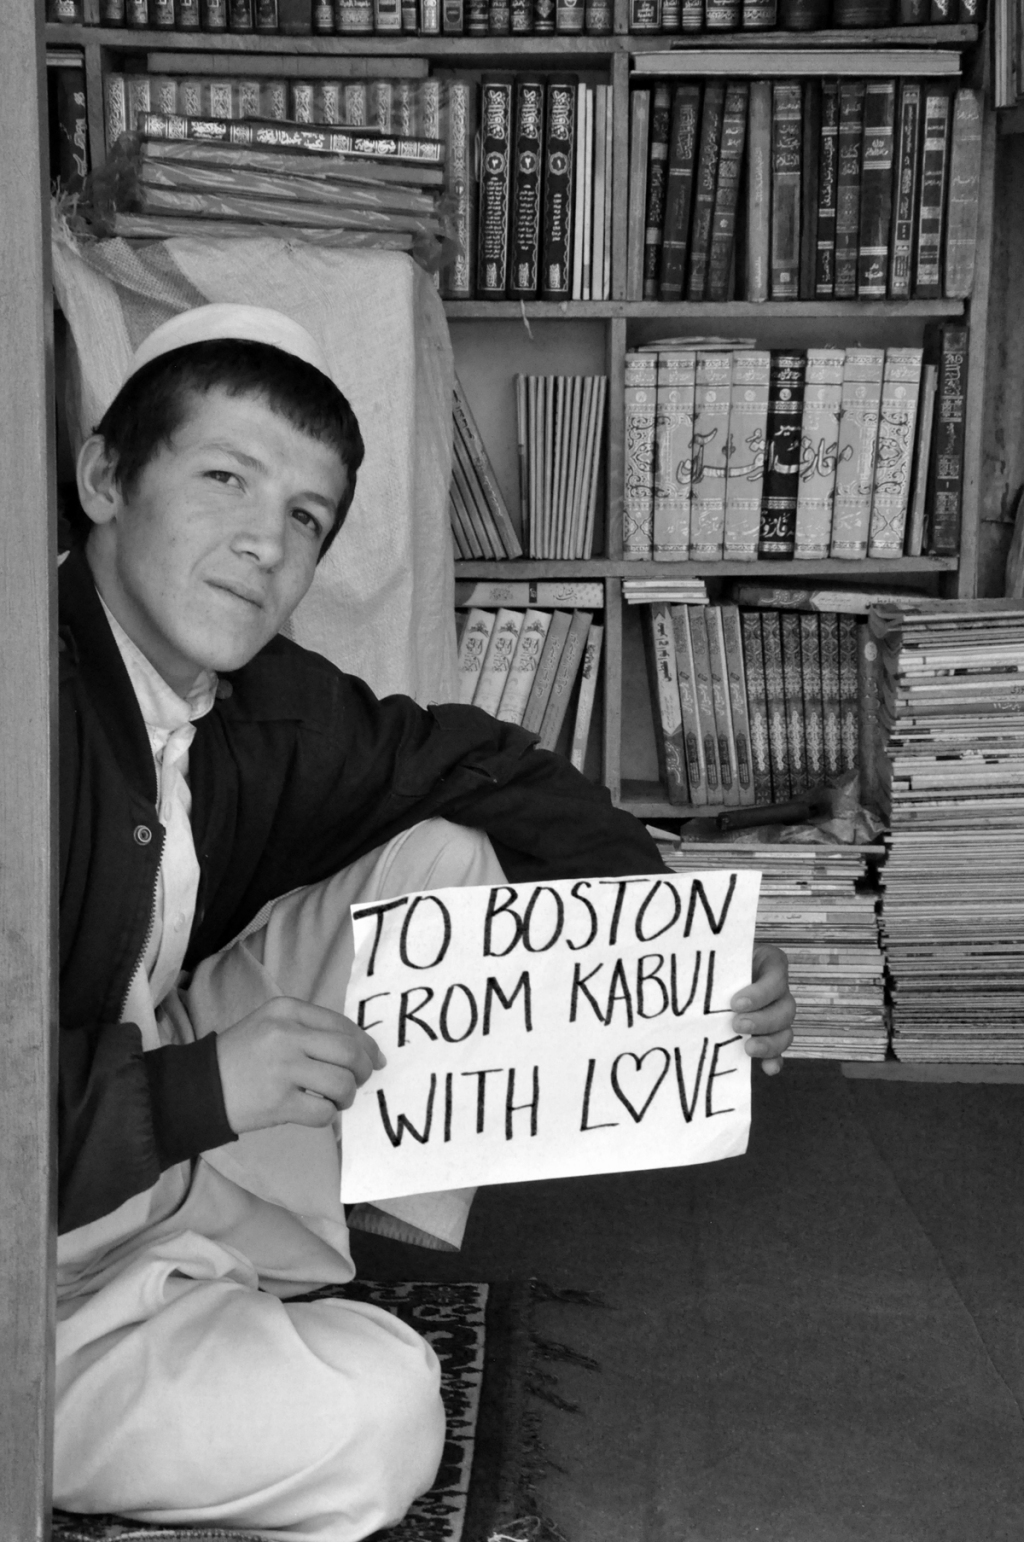 To Boston. From Kabul. With Love. 6